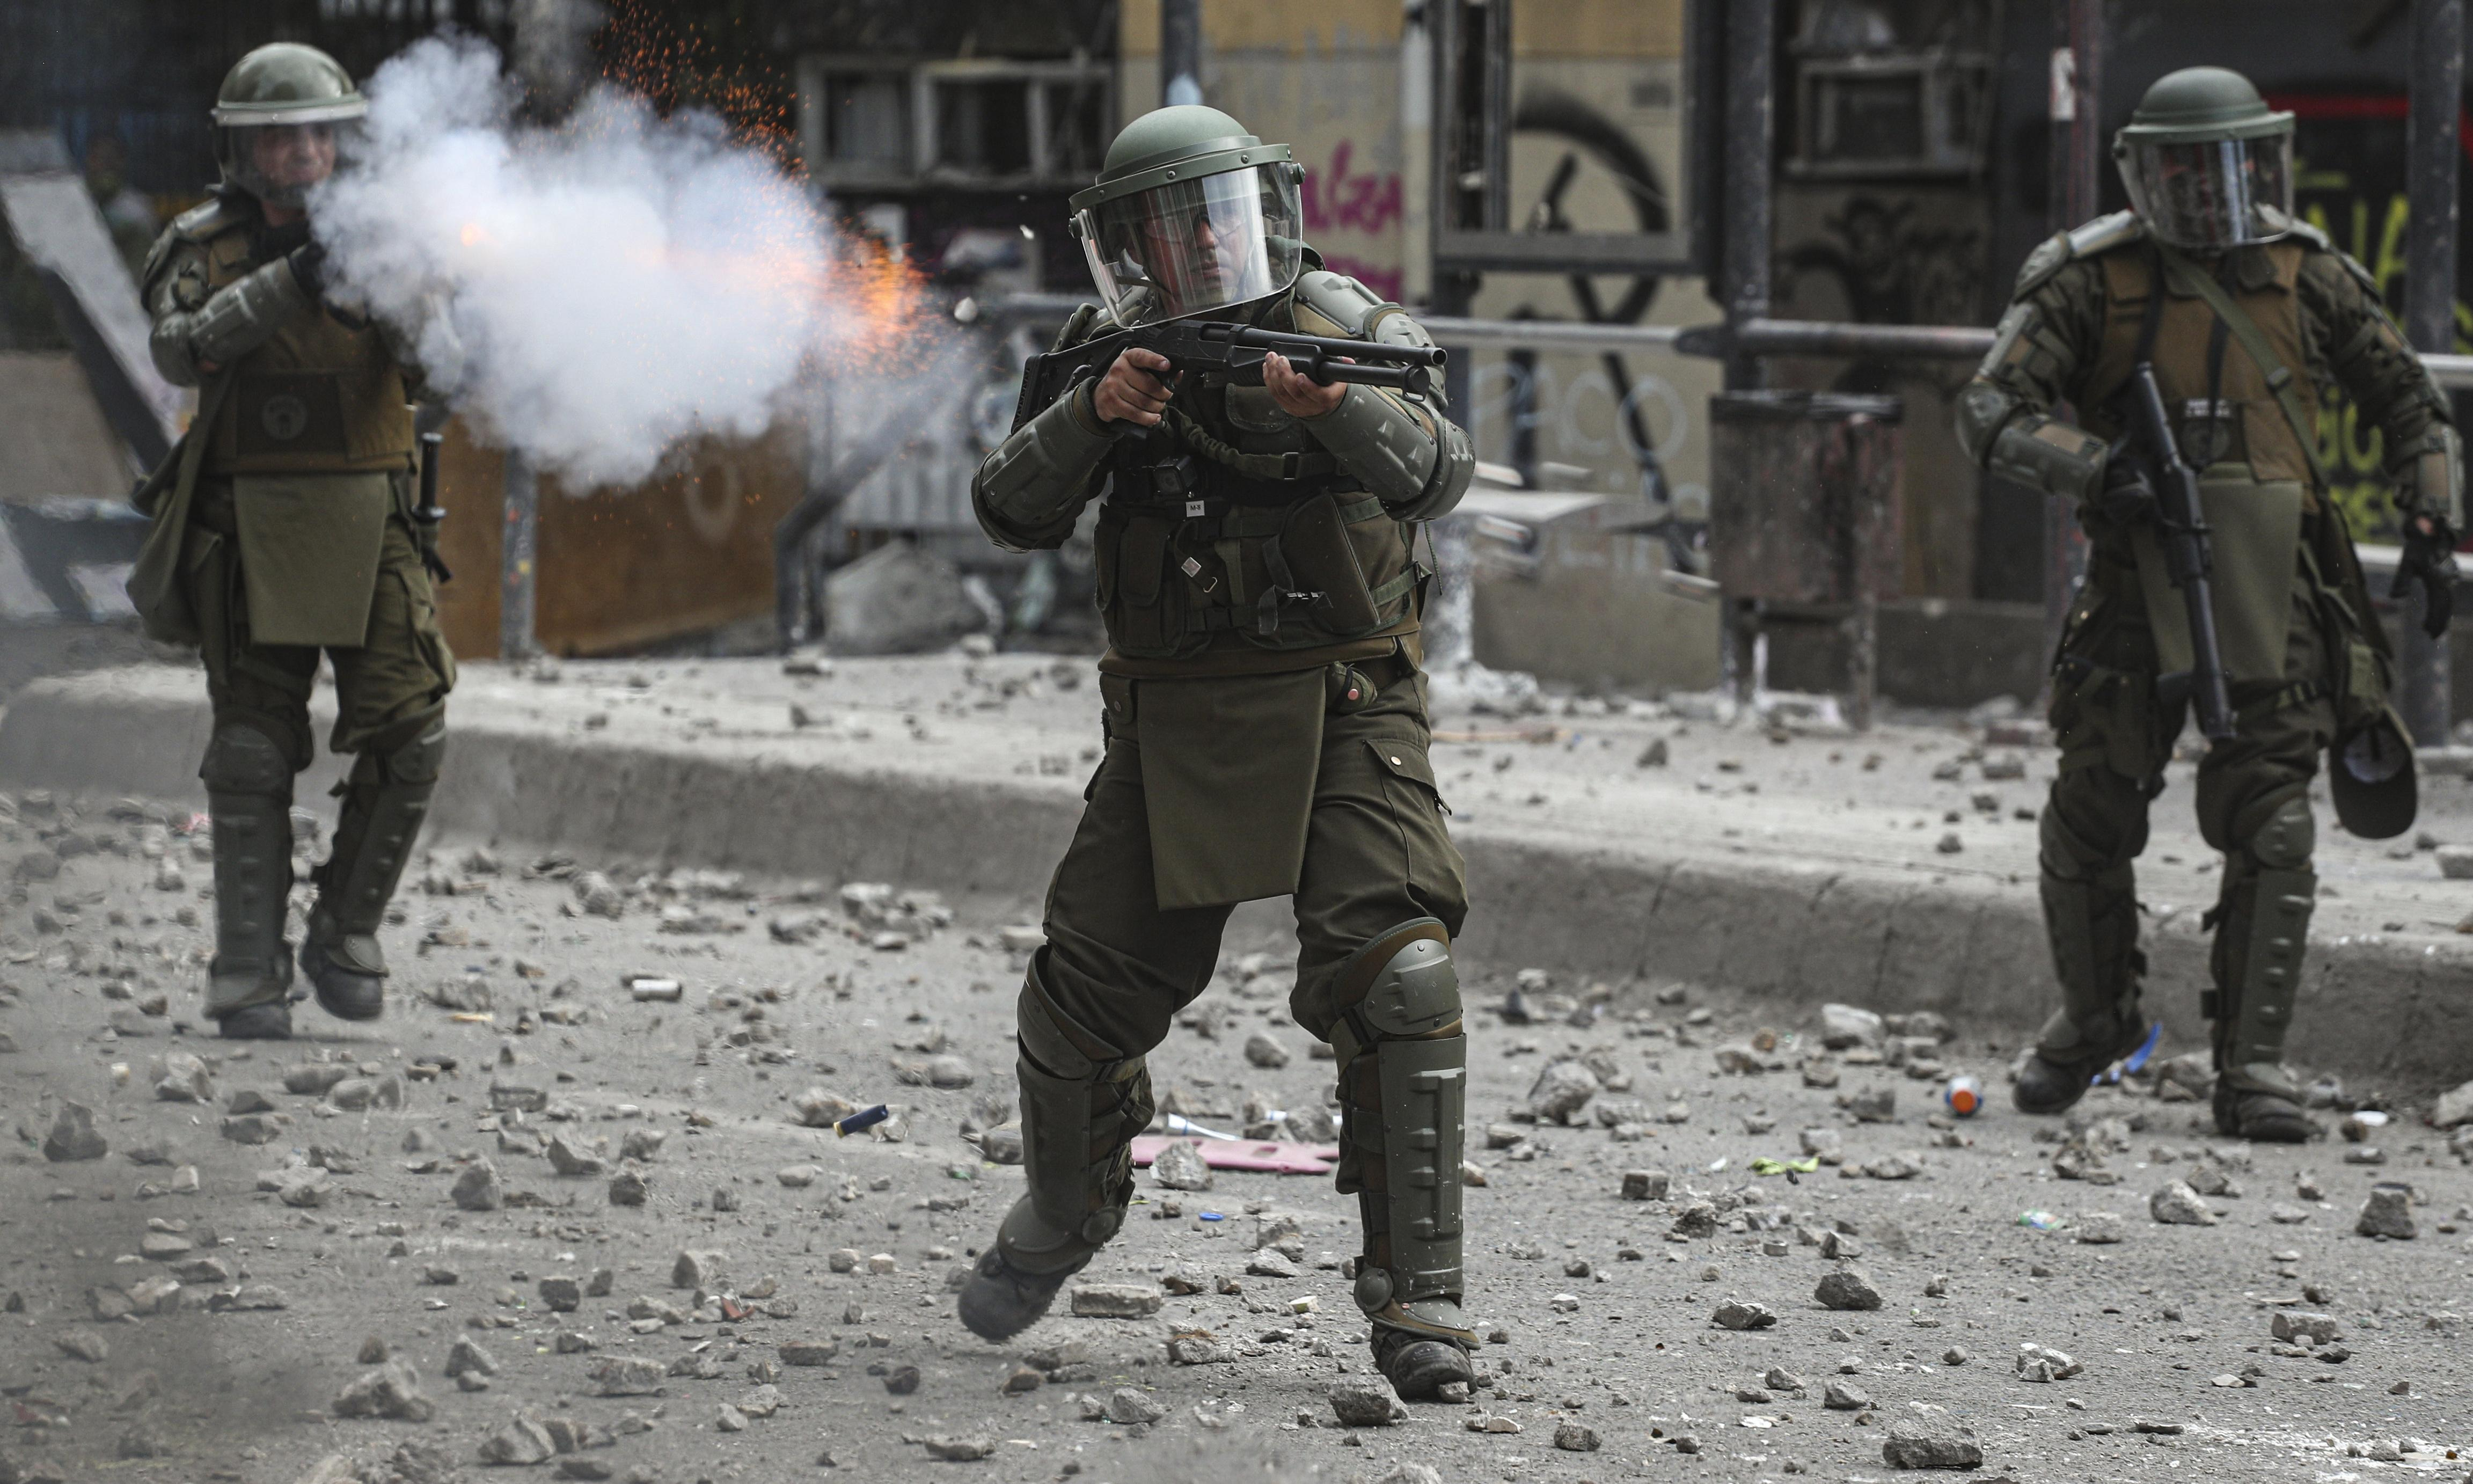 Chile: UN calls for prosecution of police and army over response to protests